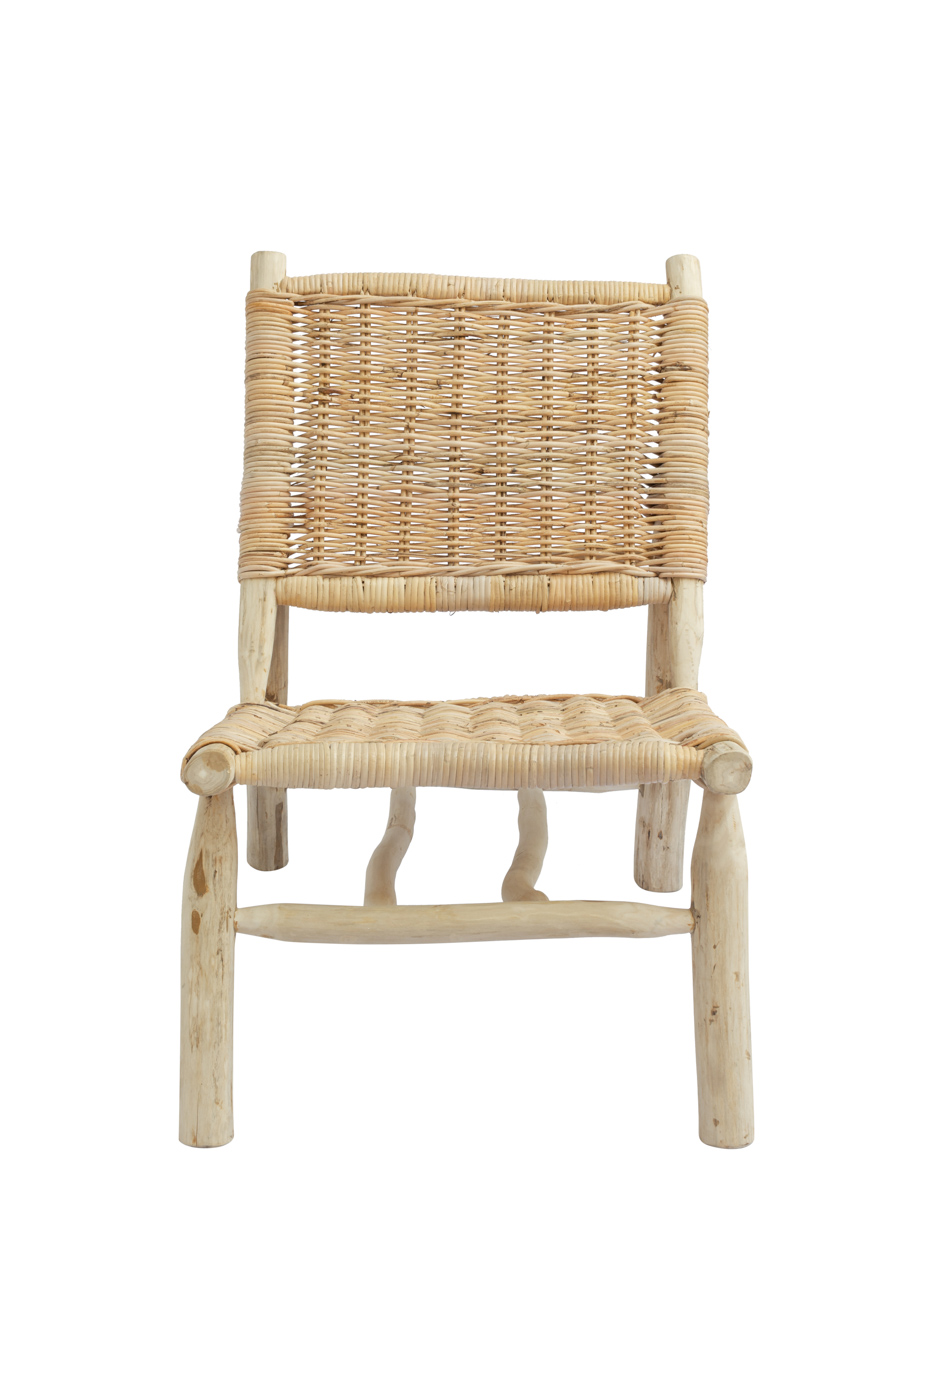 Kubu chair in teak wood and rattan without arms